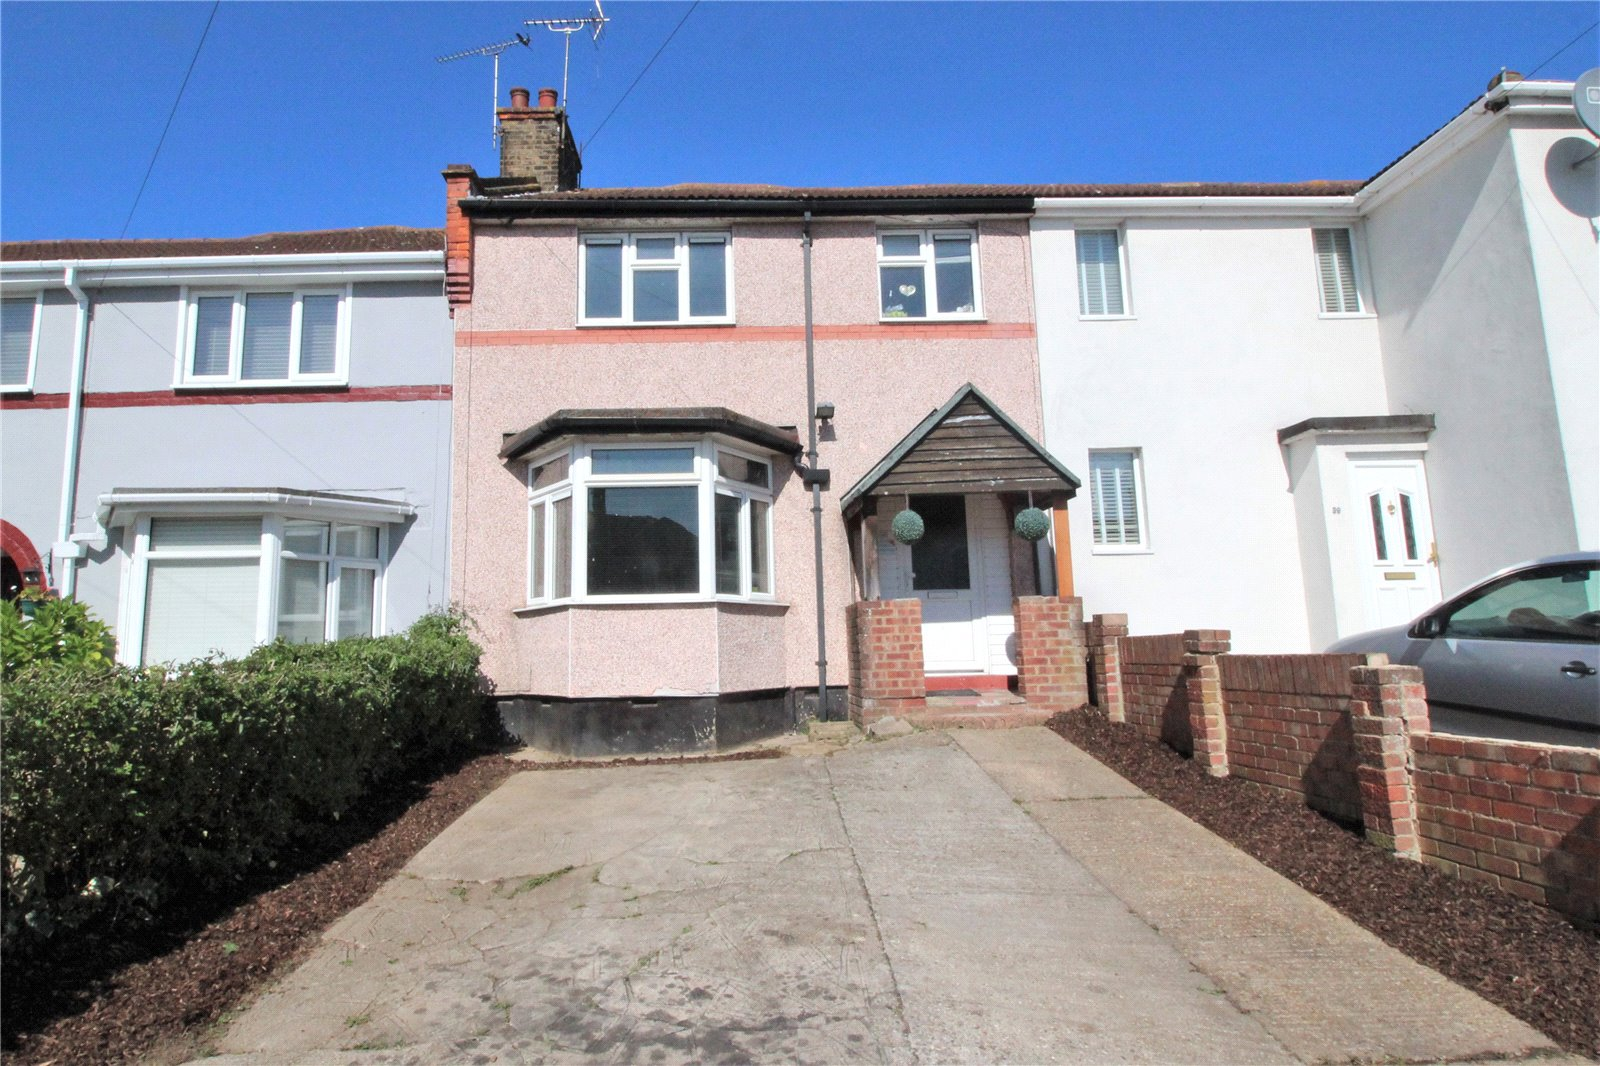 Manchester Drive, Leigh-On-Sea, Essex, SS9